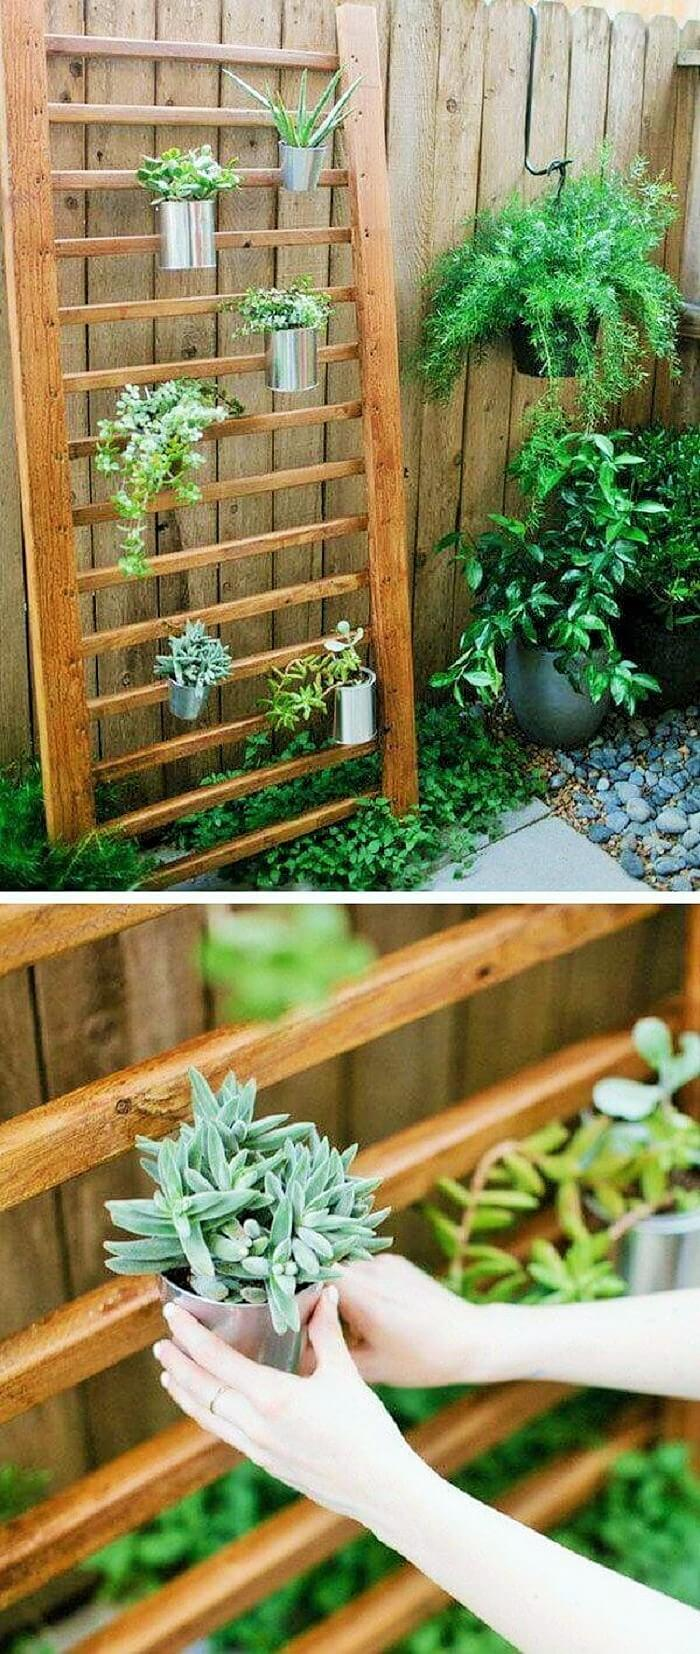 Gardening-outdoor--planter-ideas-107